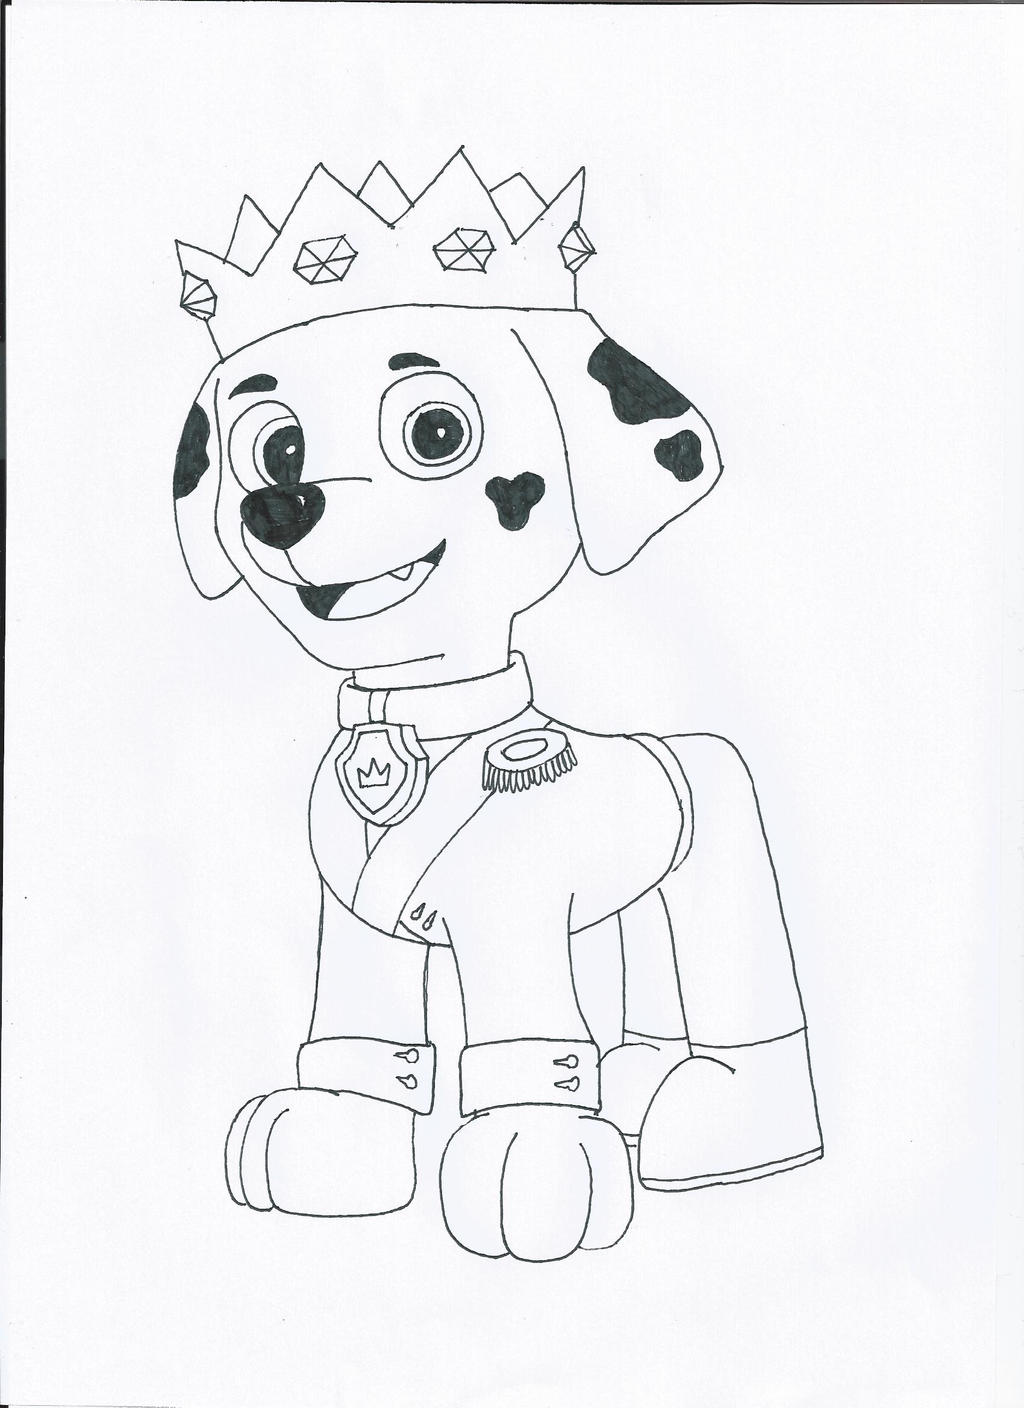 Coloring Pages Of Marshall From Paw Patrol : Paw patrol marshall coloring pages